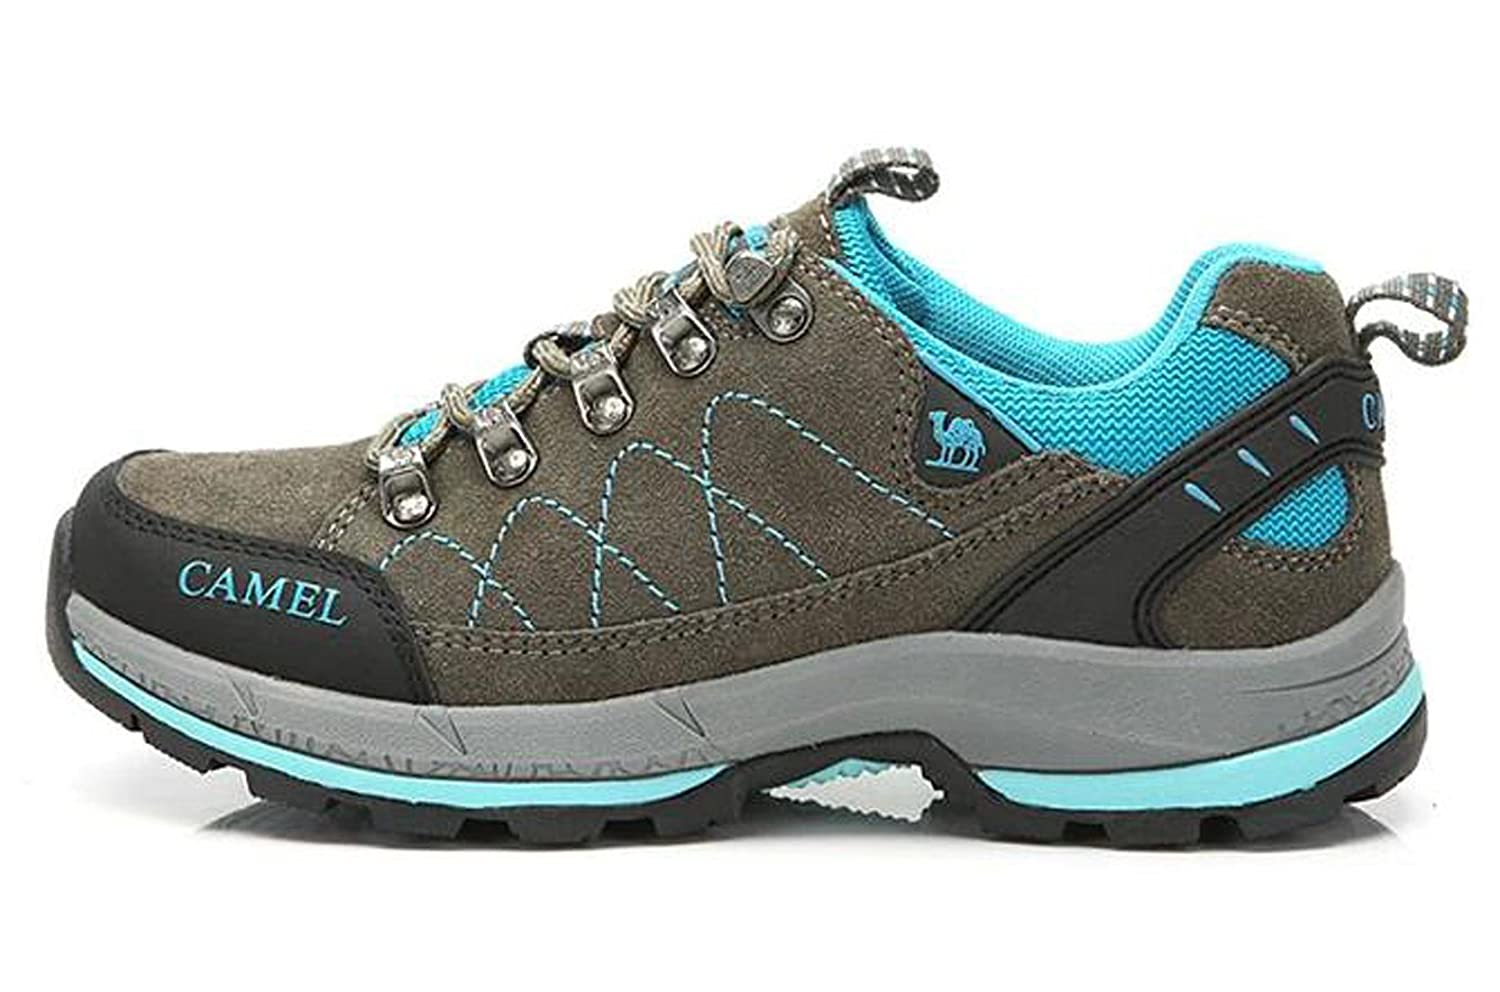 Camel Women's Lighter Dailing Cycling Shoes